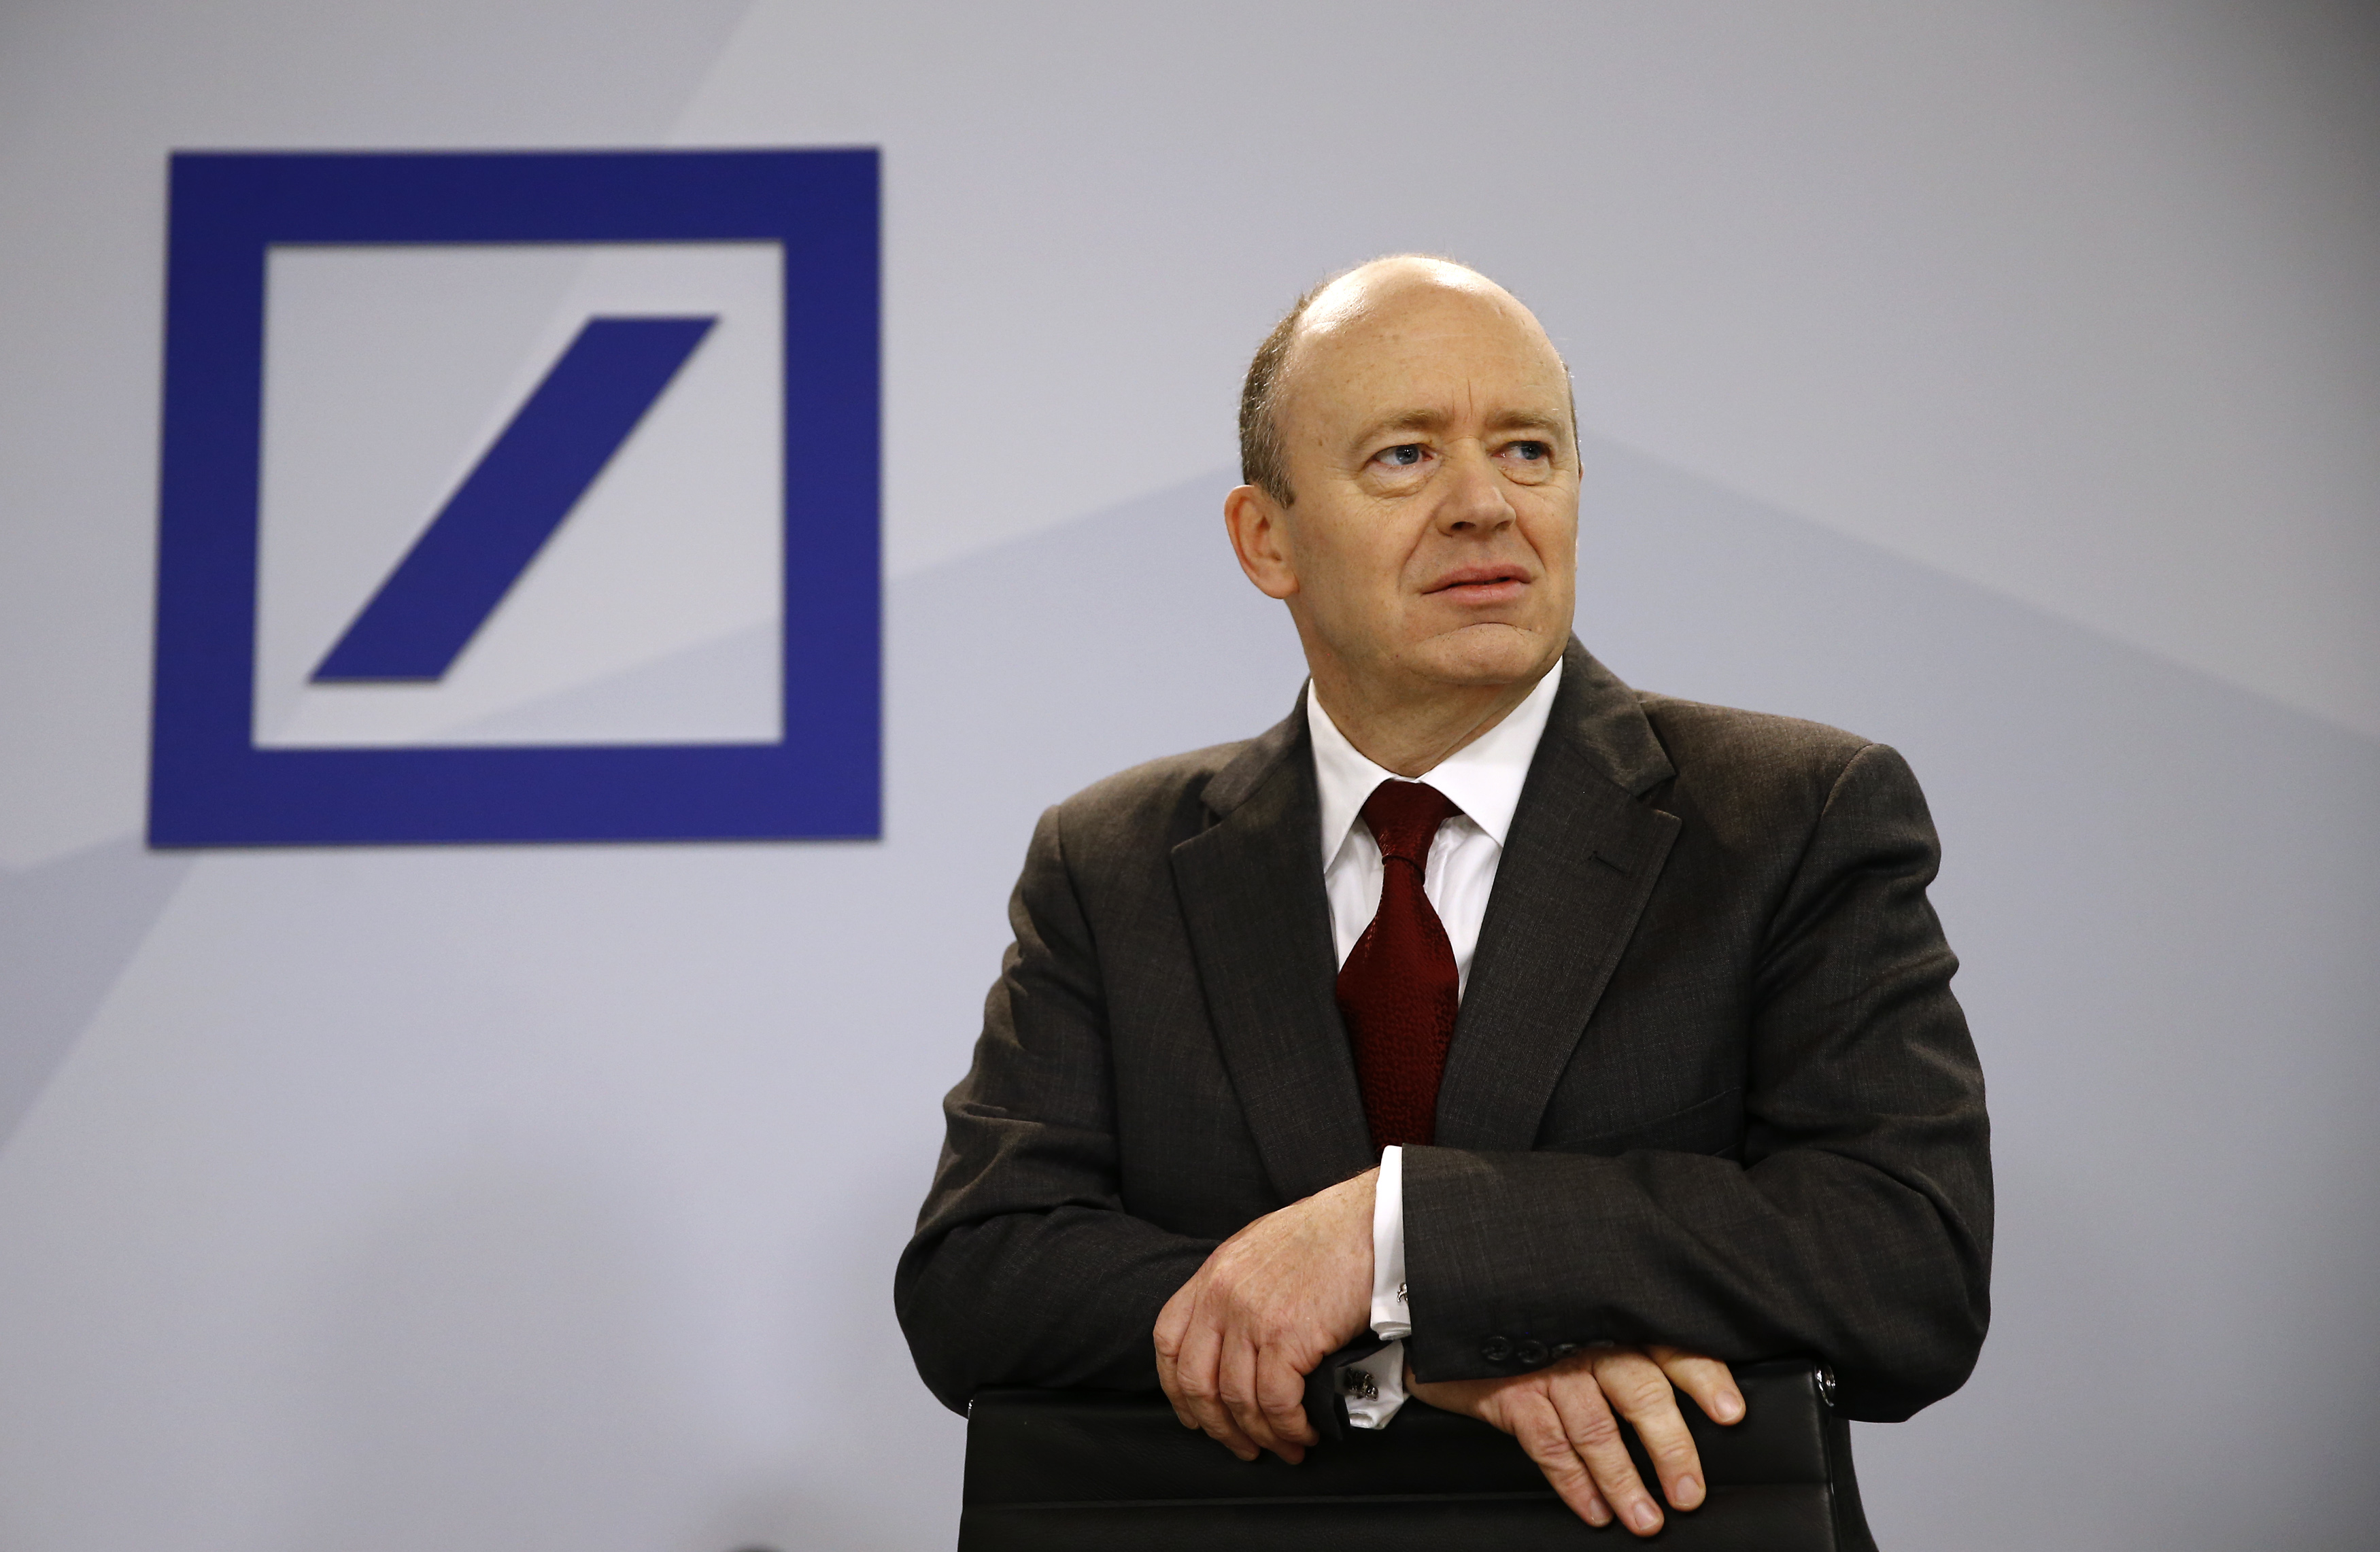 Deutsche Bank new Chief Executive John Cryan arrives for a news conference in Frankfurt October 29, 2015.